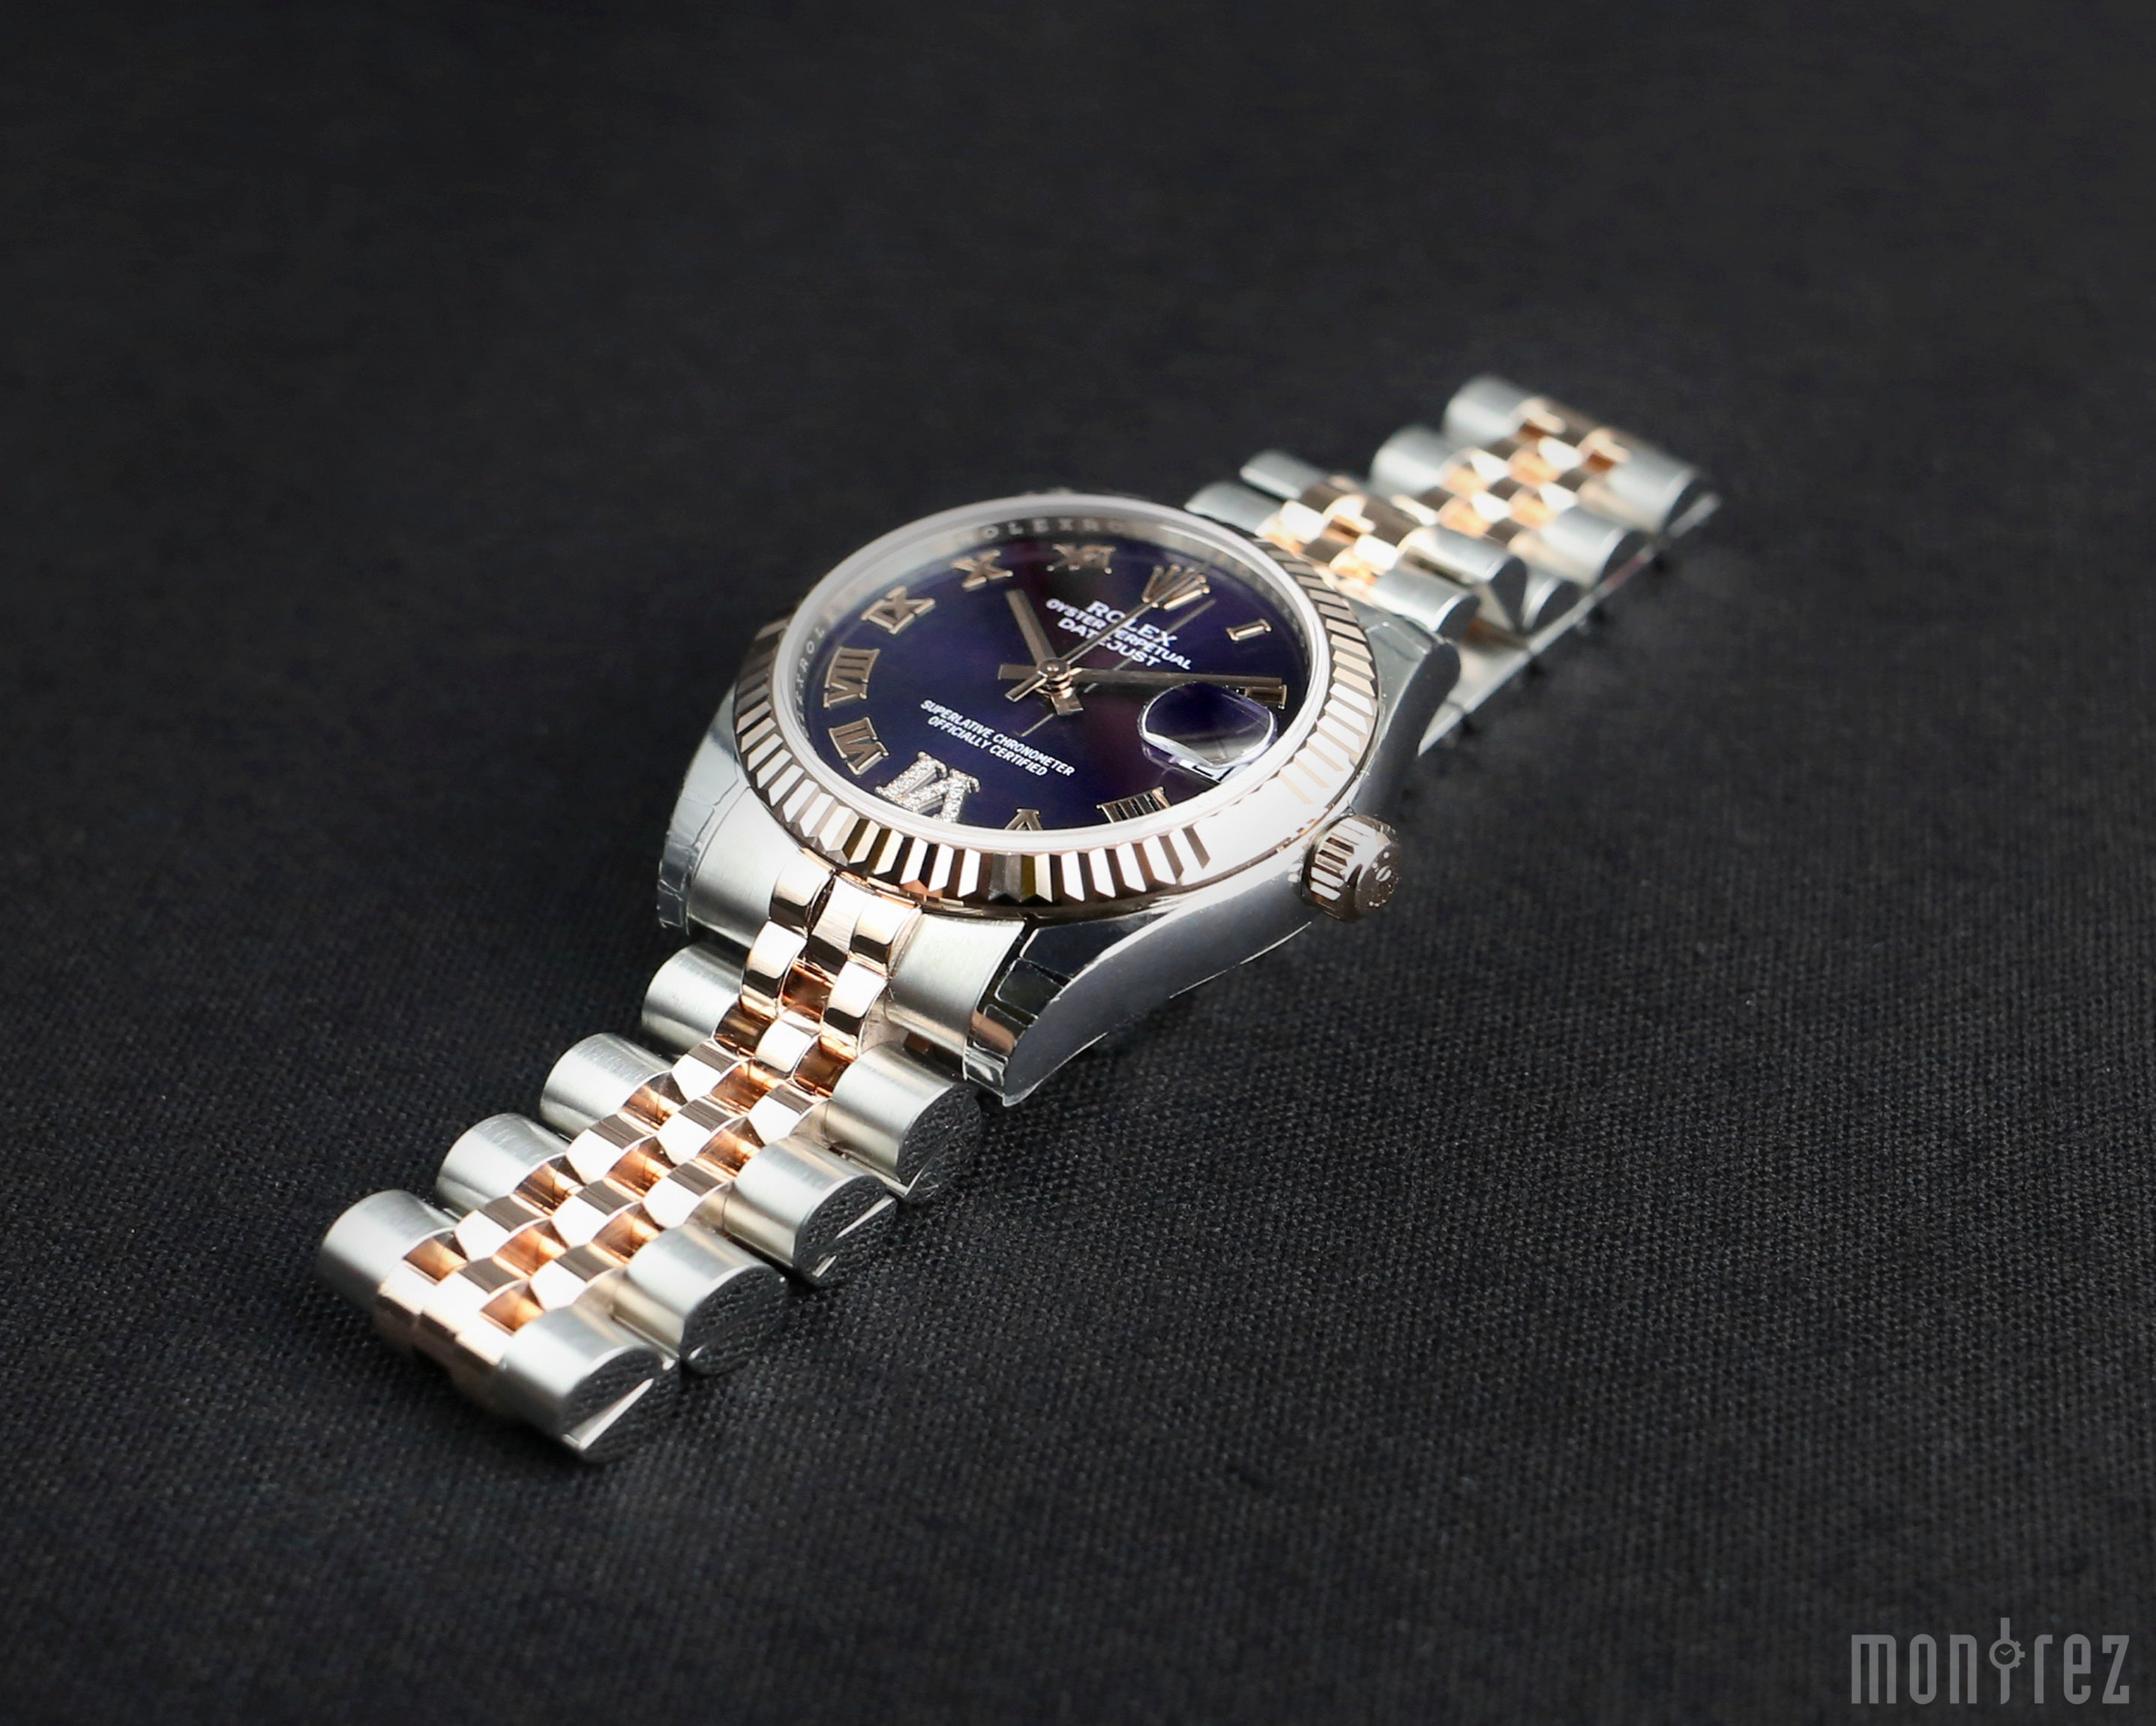 Rolex Datejust 31mm 178271 Purple Dial with VI Diamonds (Jubilee Bracelet)